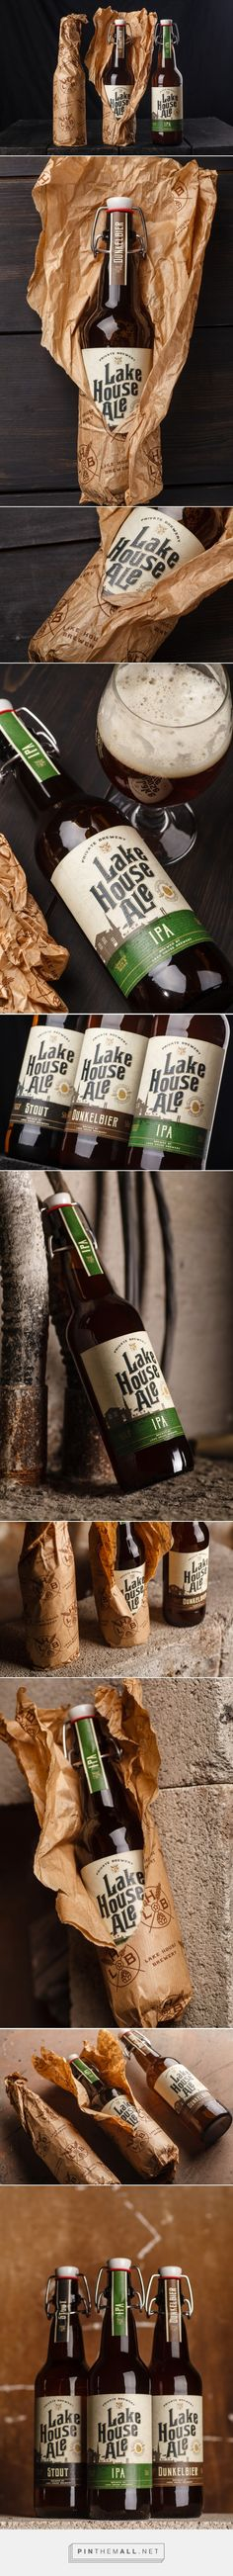 Lake House Ale - Packaging of the World - Creative Package Design Gallery - http://www.packagingoftheworld.com/2017/07/lake-house-ale.html